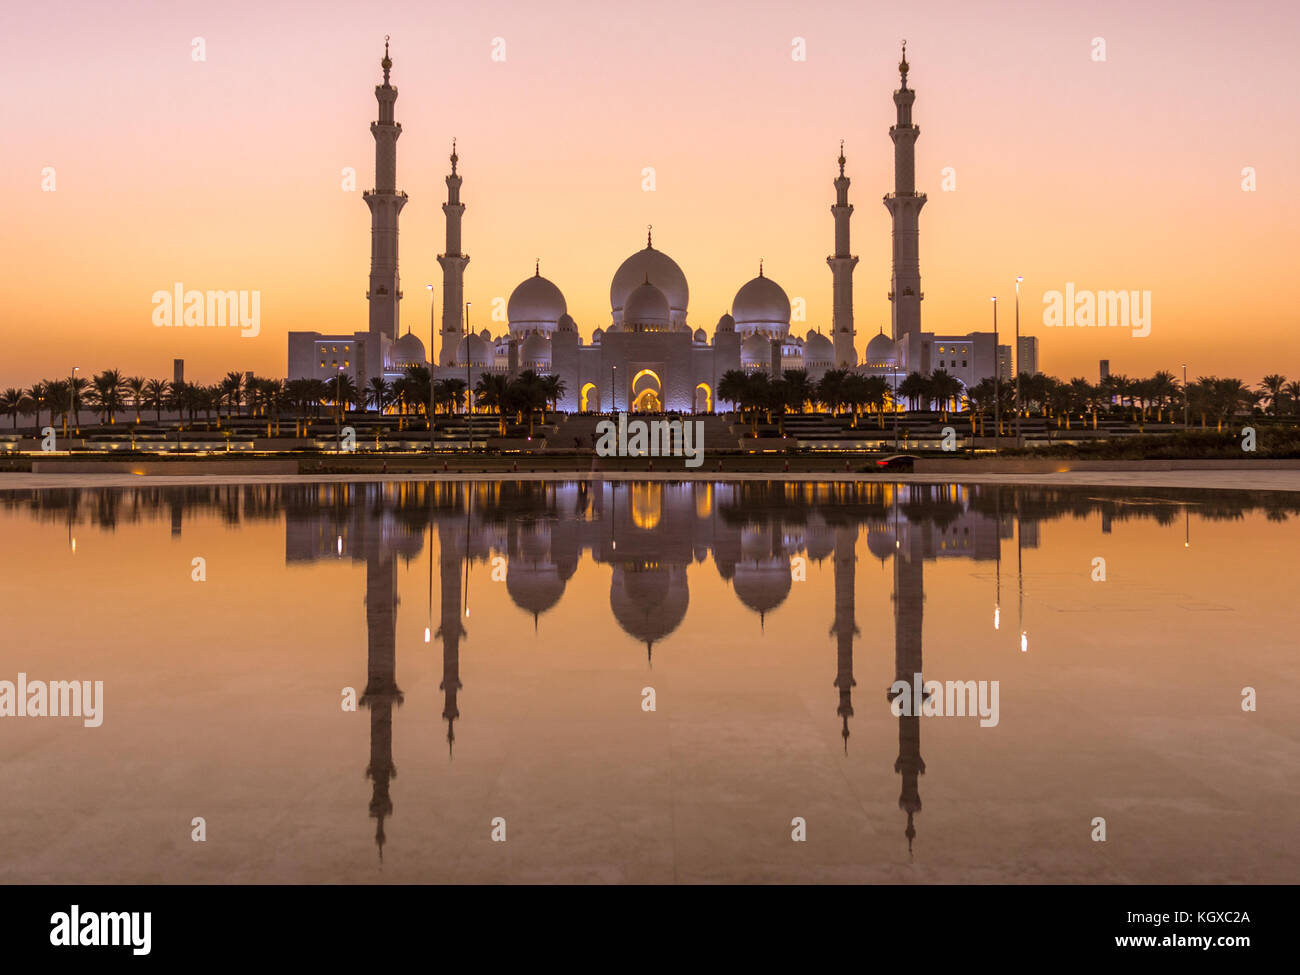 Sheik Zayed Mosque in Abu Dhabi après le coucher du soleil Photo Stock